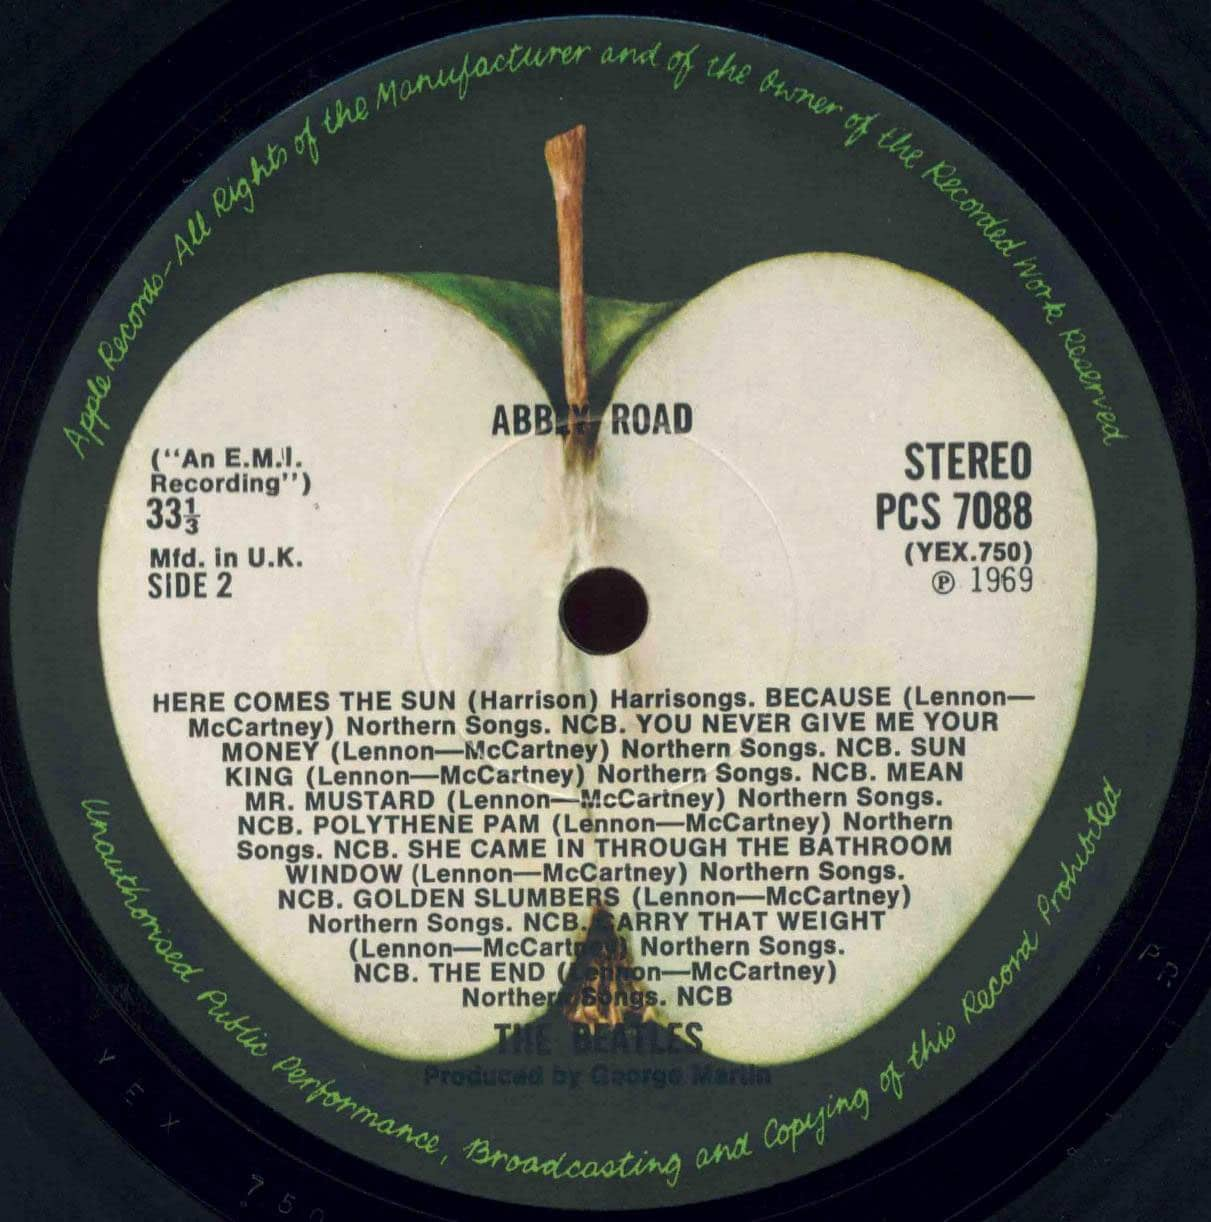 Polythene pam she came in through the bathroom window - 30 July 1969 Recording Mixing Come Together Abbey Road Medley The Beatles Bible